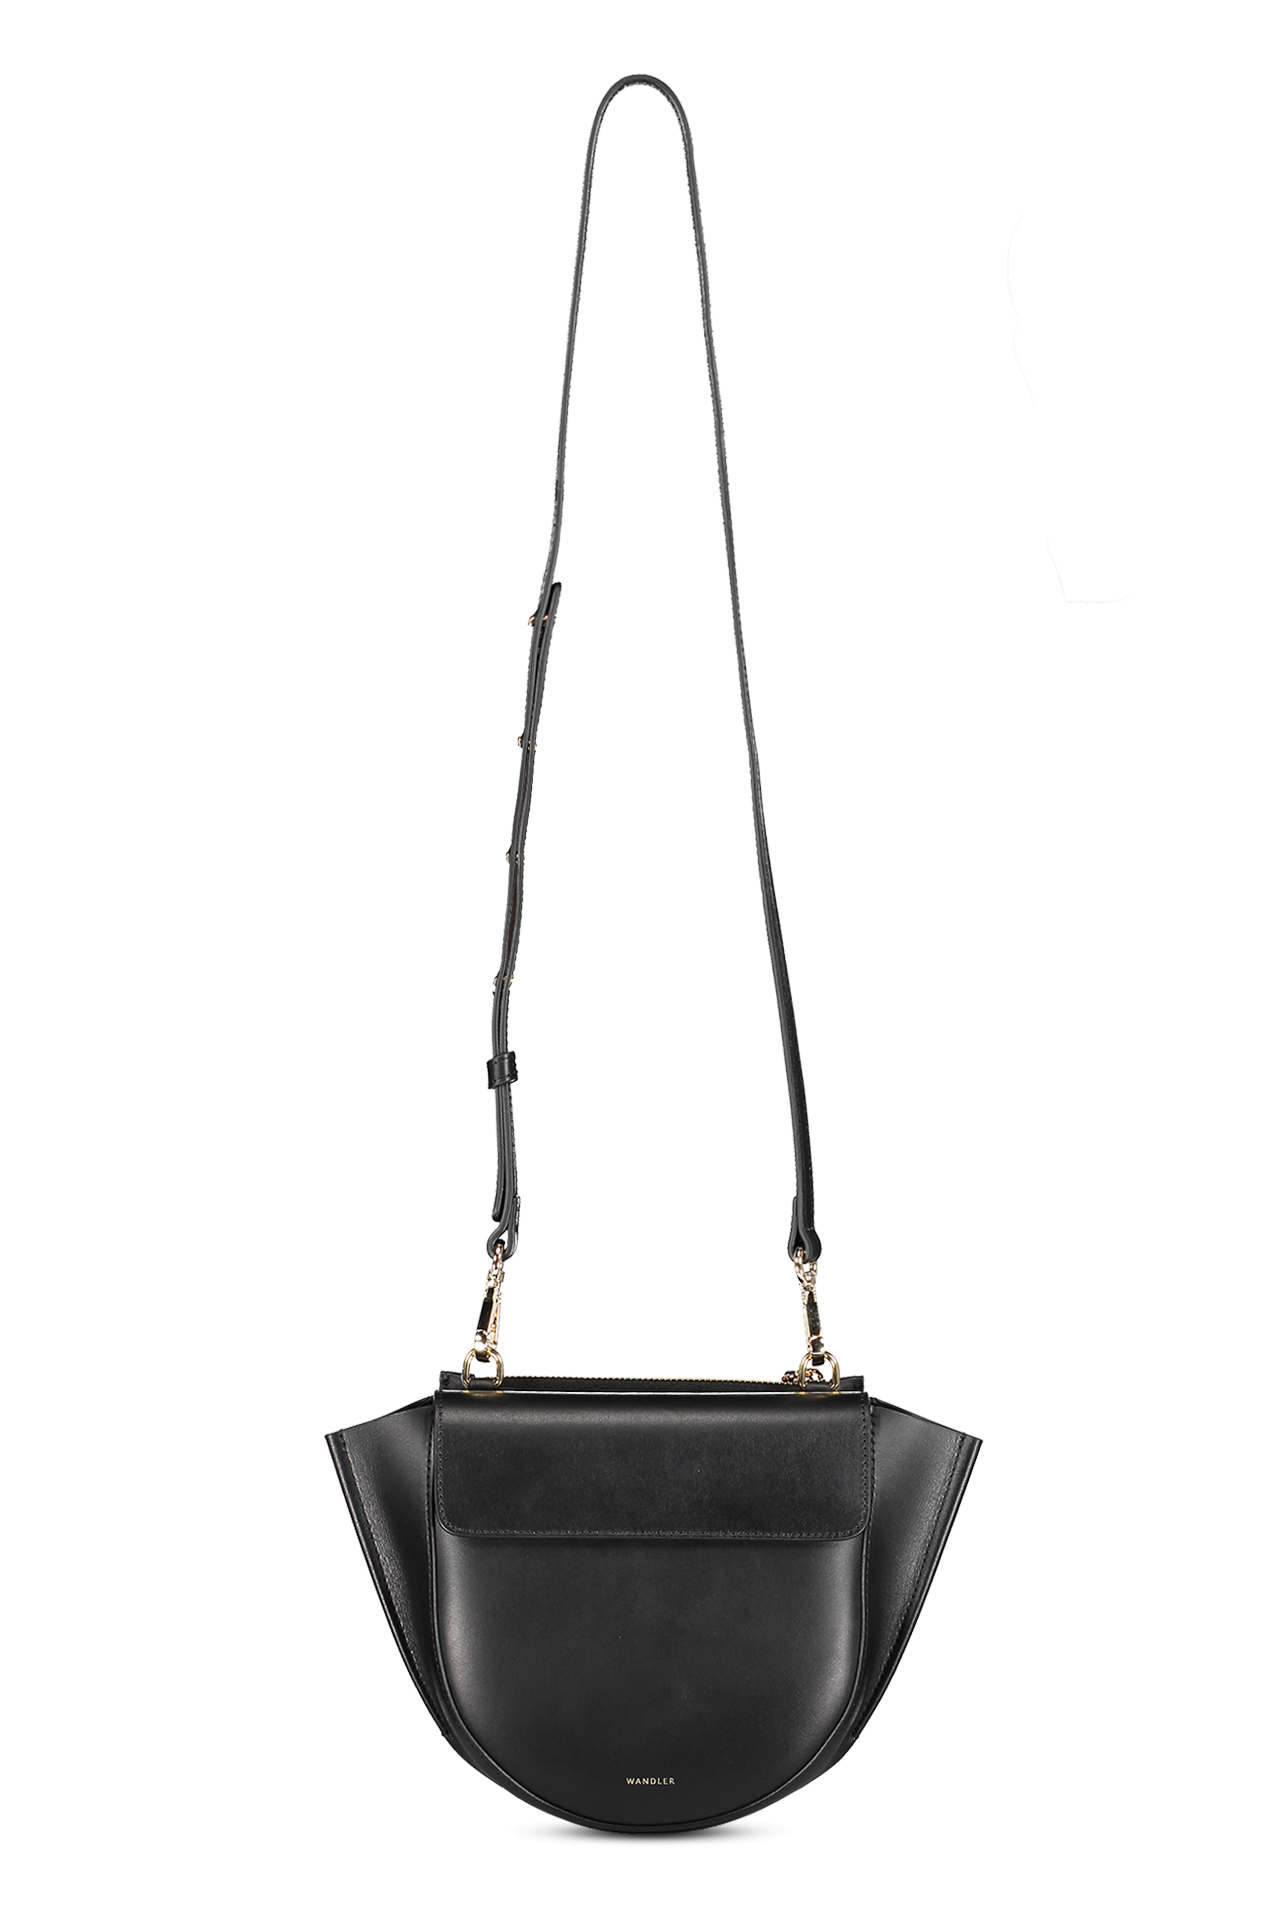 Front hanging image of Wandler Hortensia Mini Calf Leather Black